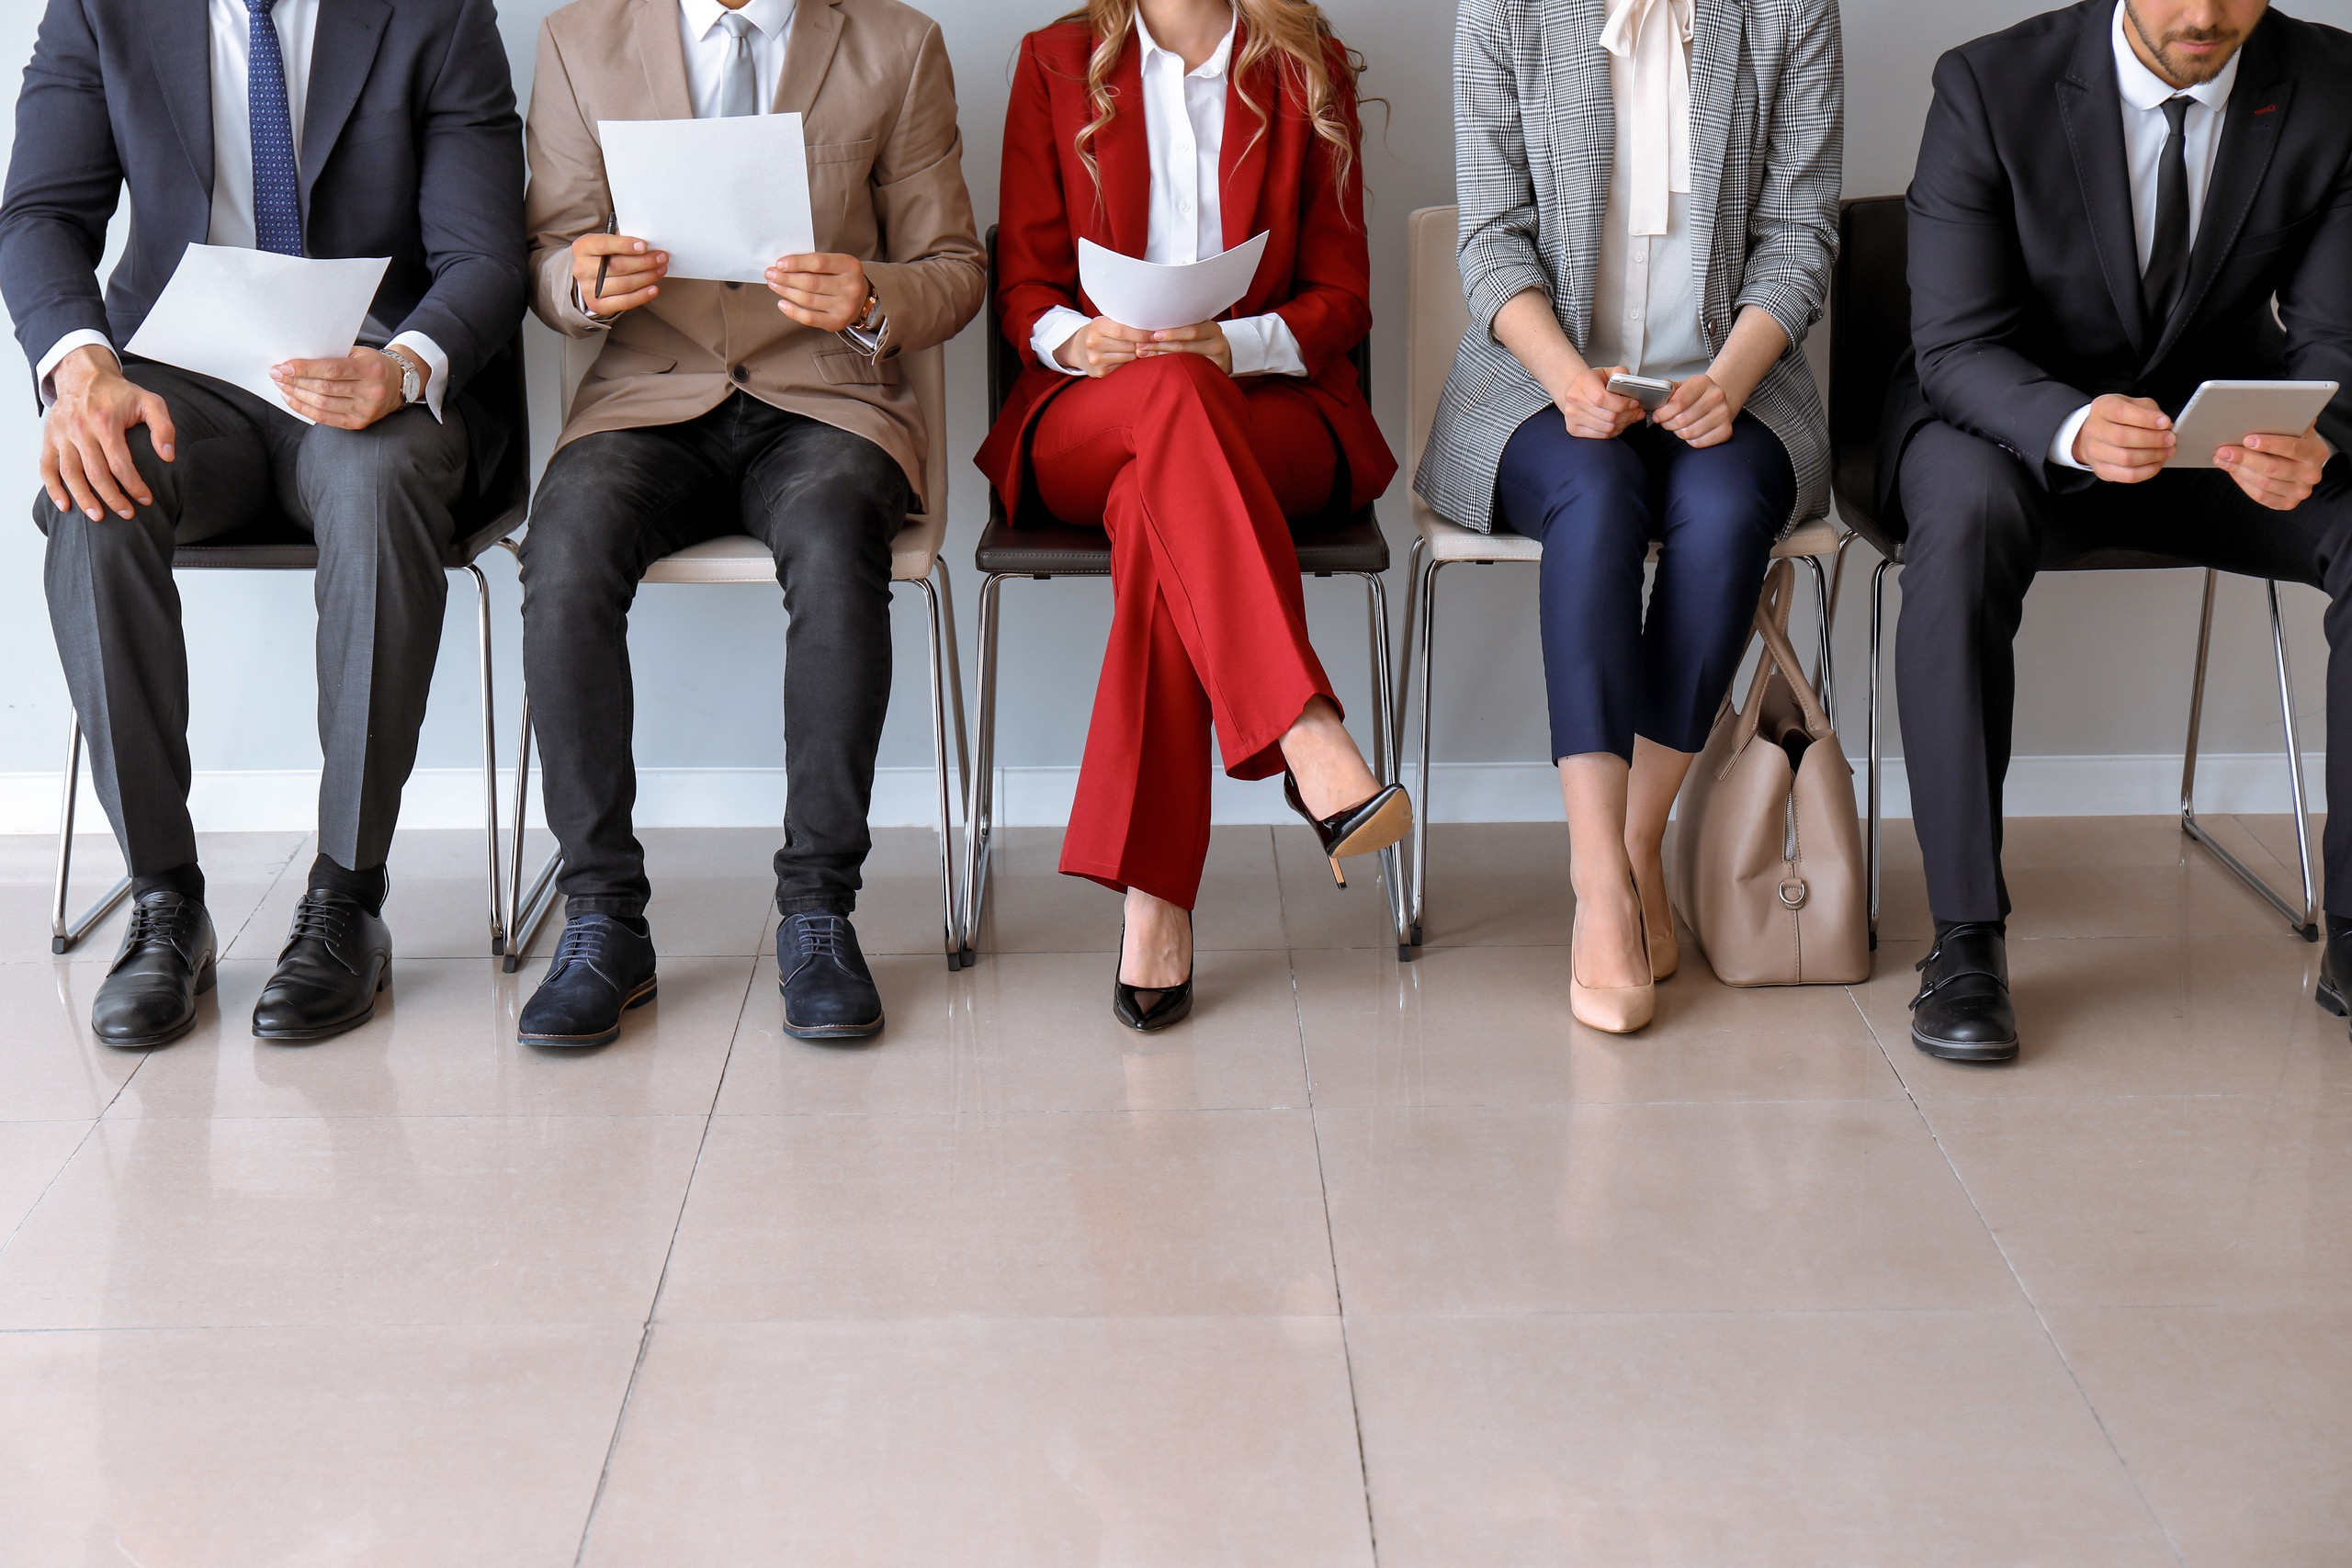 People waiting for a job interview